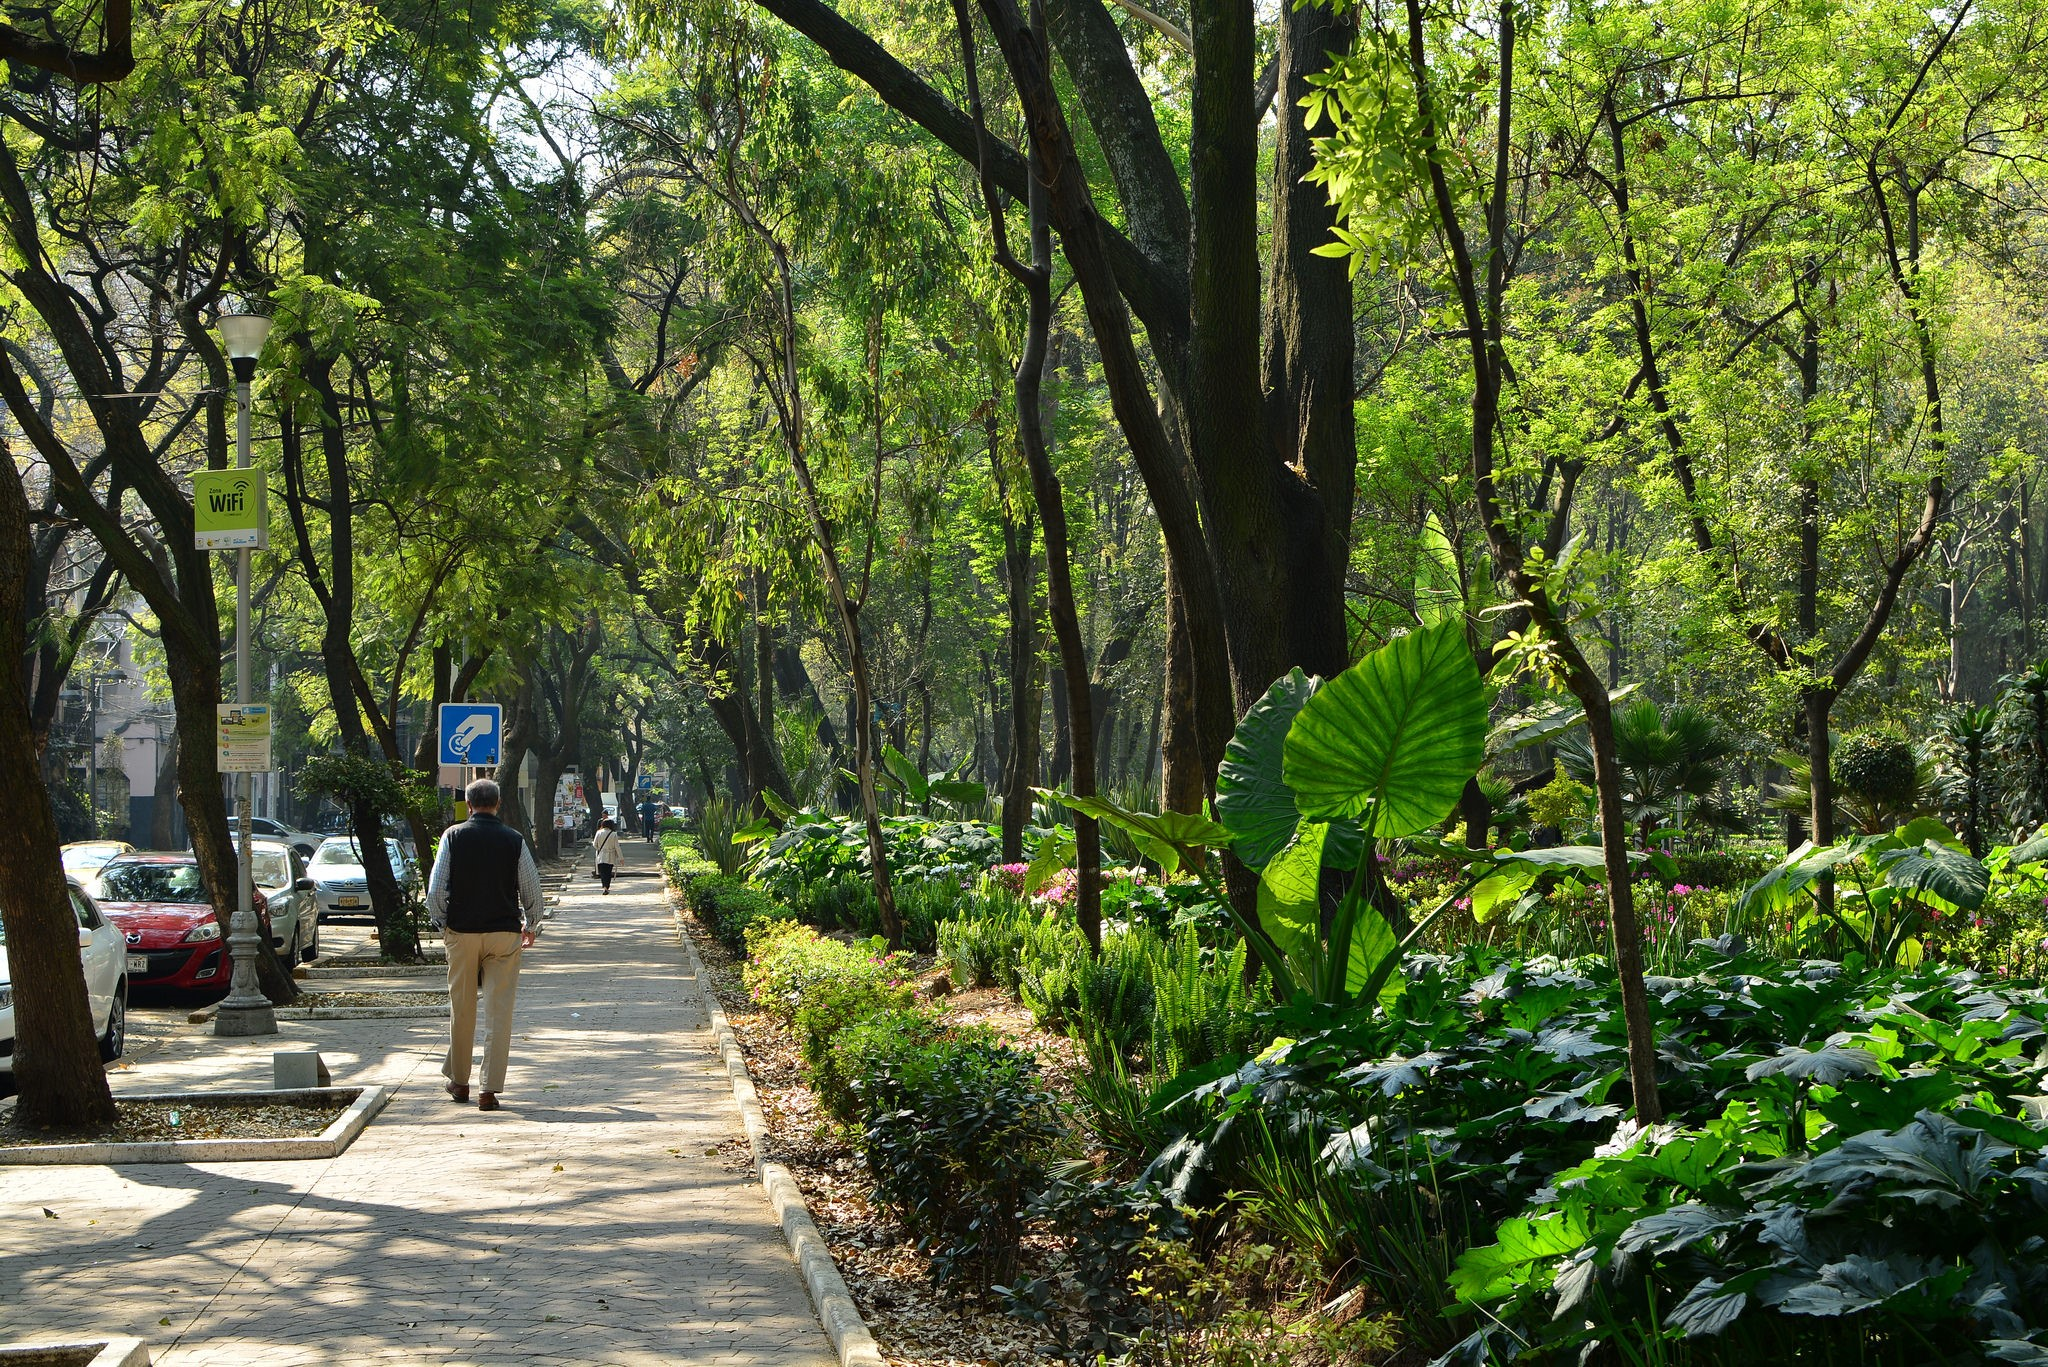 <p>Green space in Mexico City. Photo by cbherlich/Flickr</p>